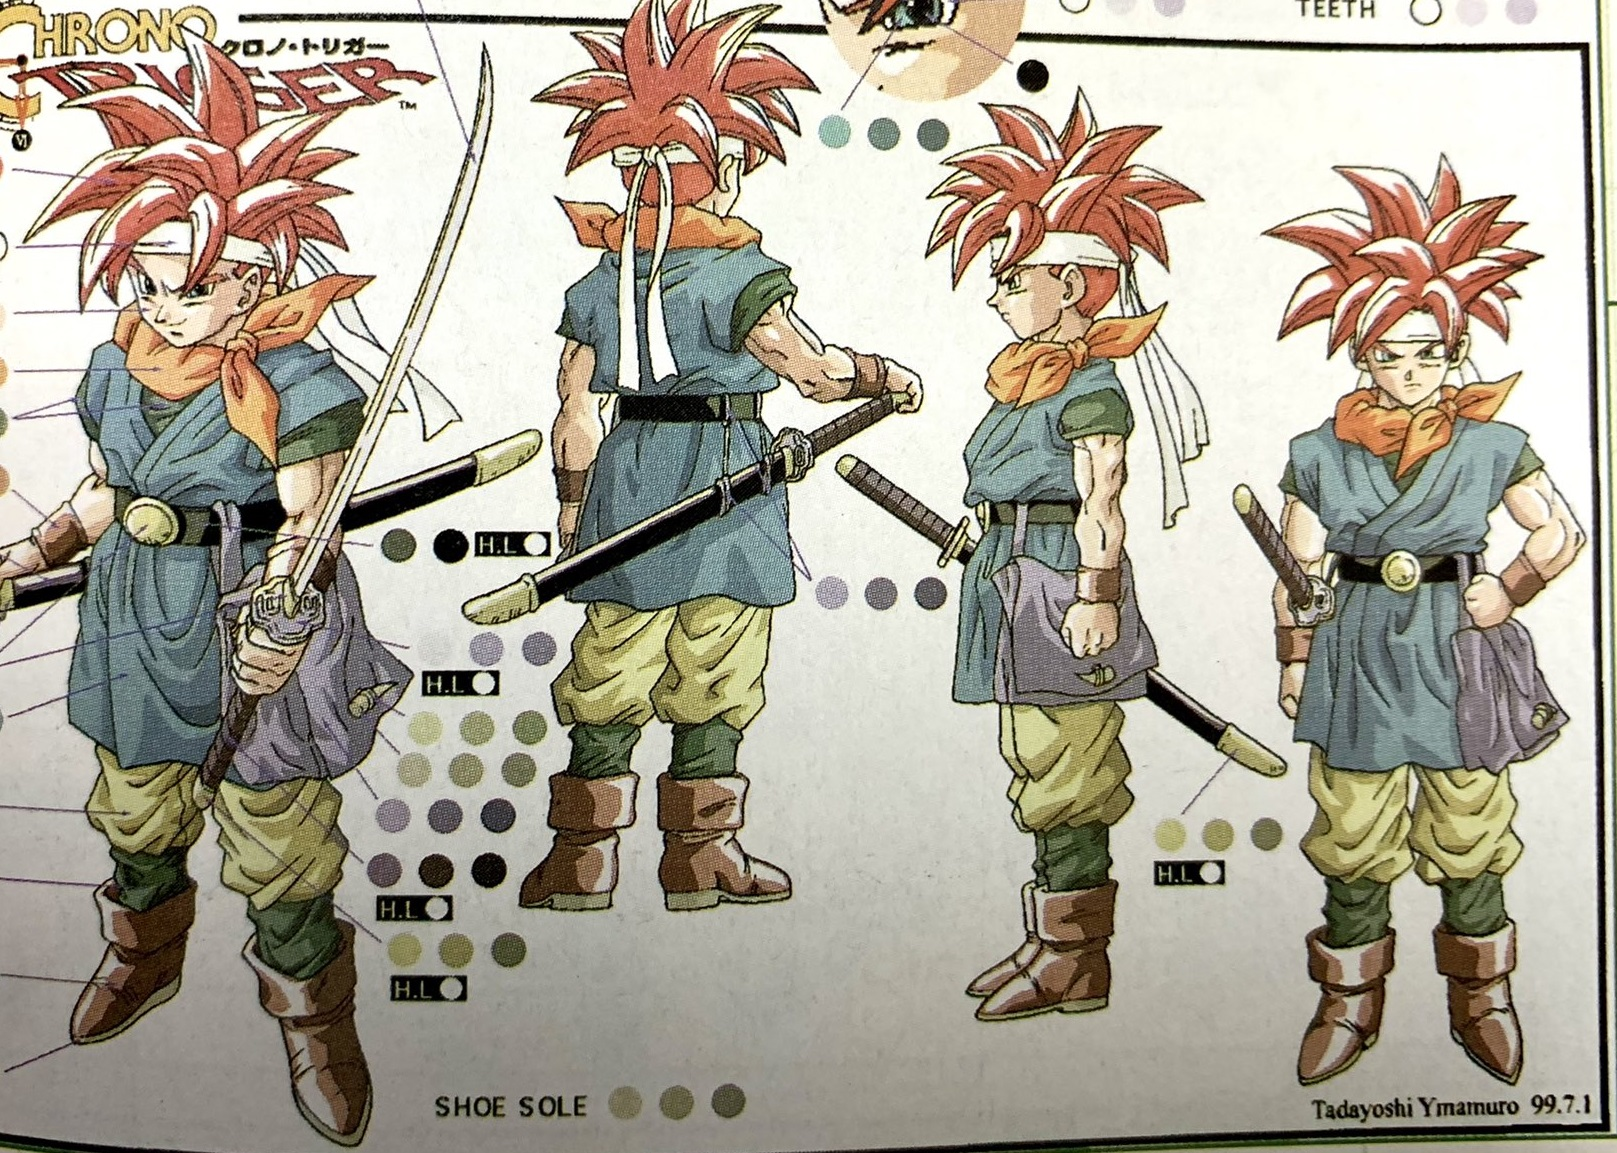 Whoa newly unearthed Chrono Trigger art? I'm into it screenshot